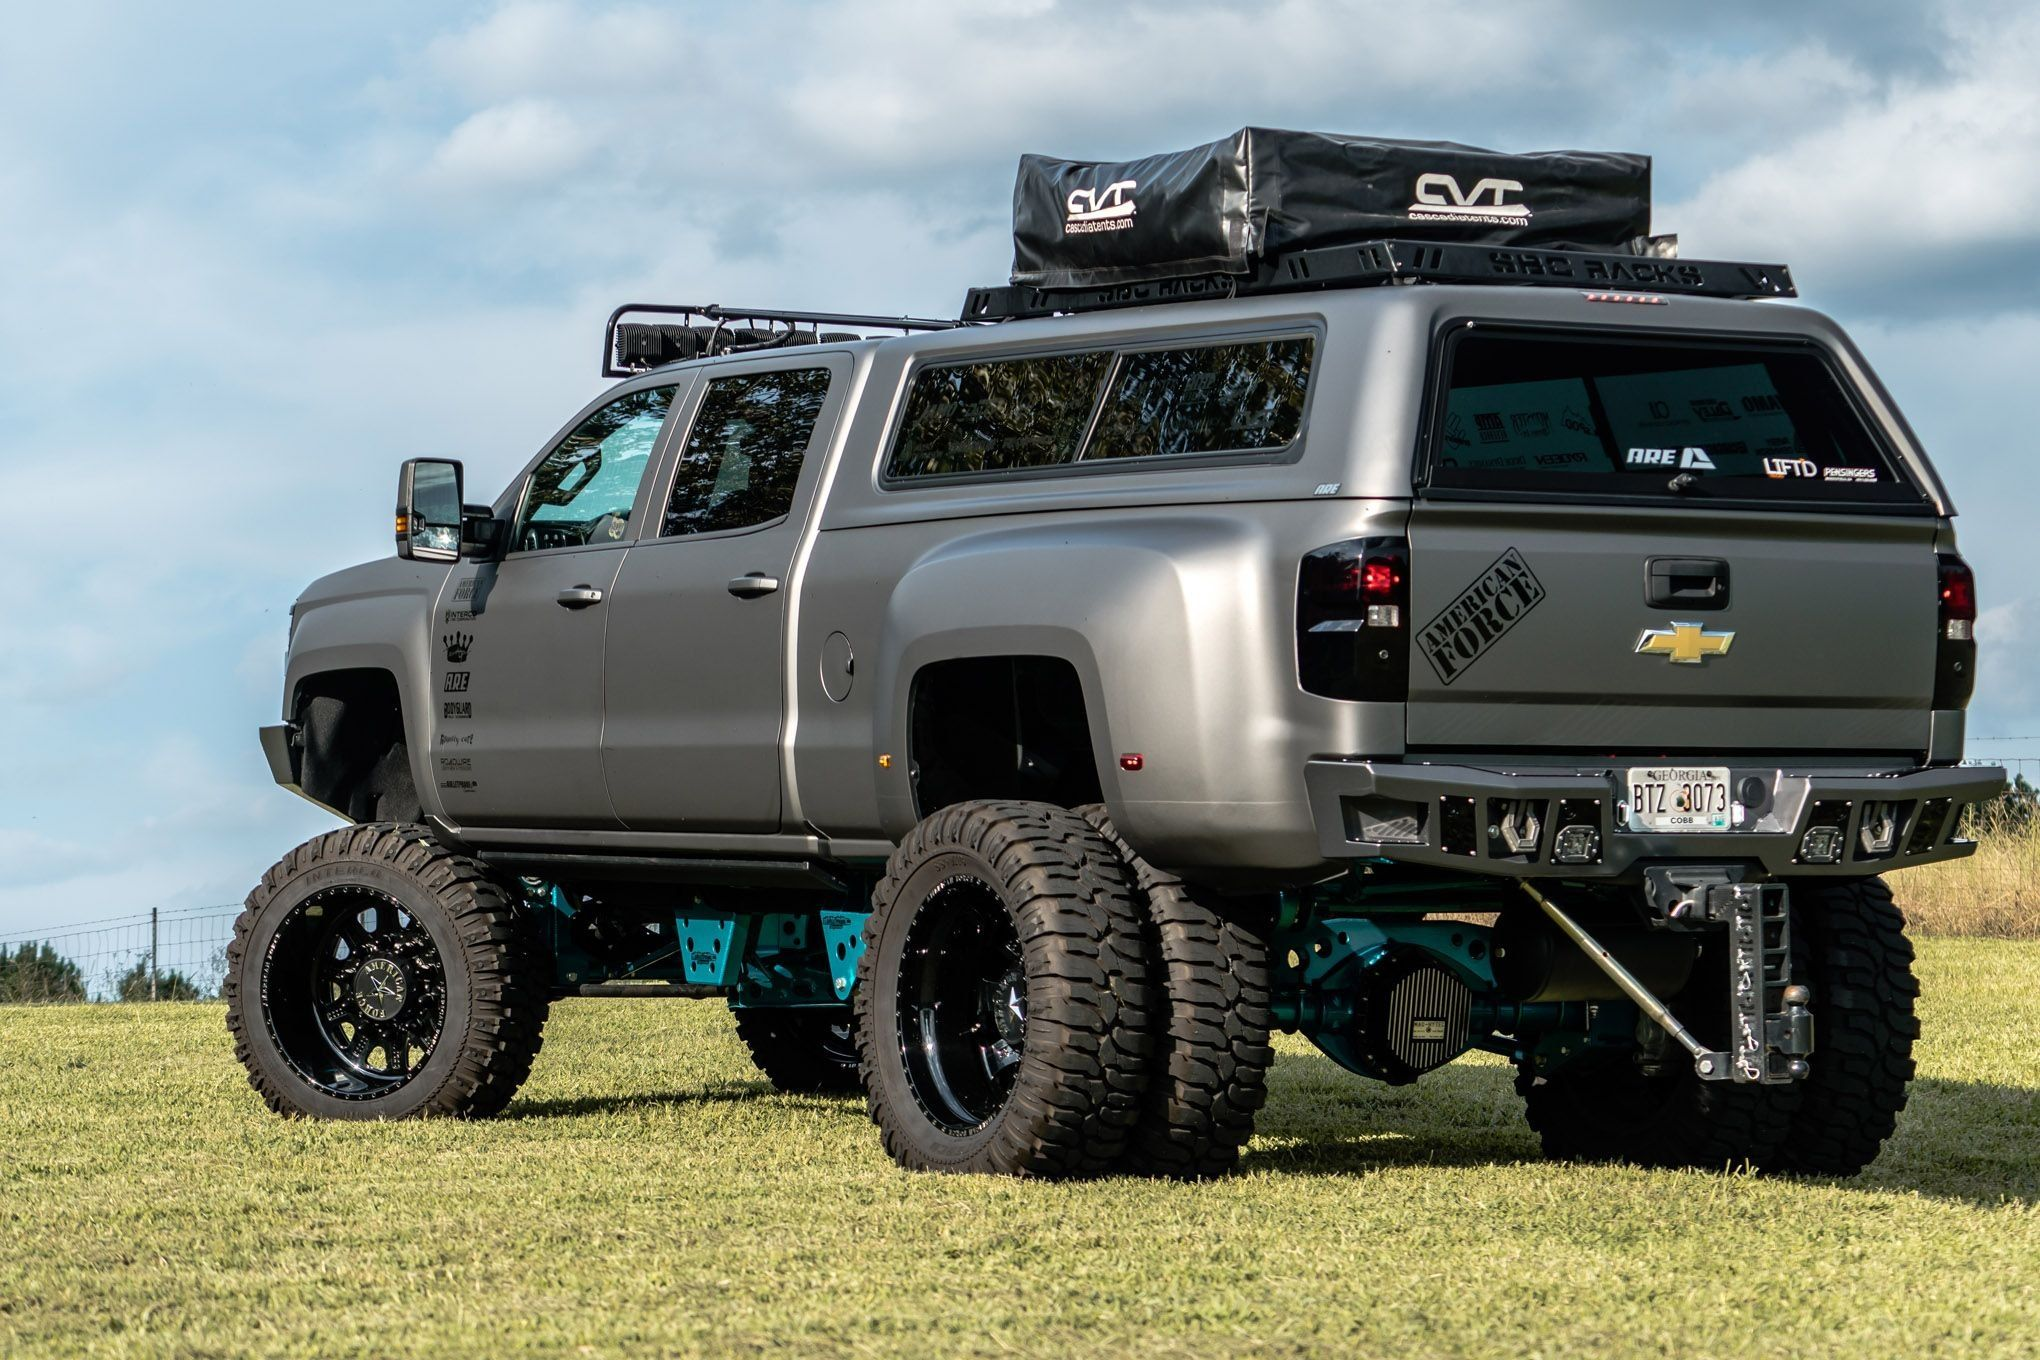 Pin By Nicholaswander On Offroad Vehicles In 2020 Chevy